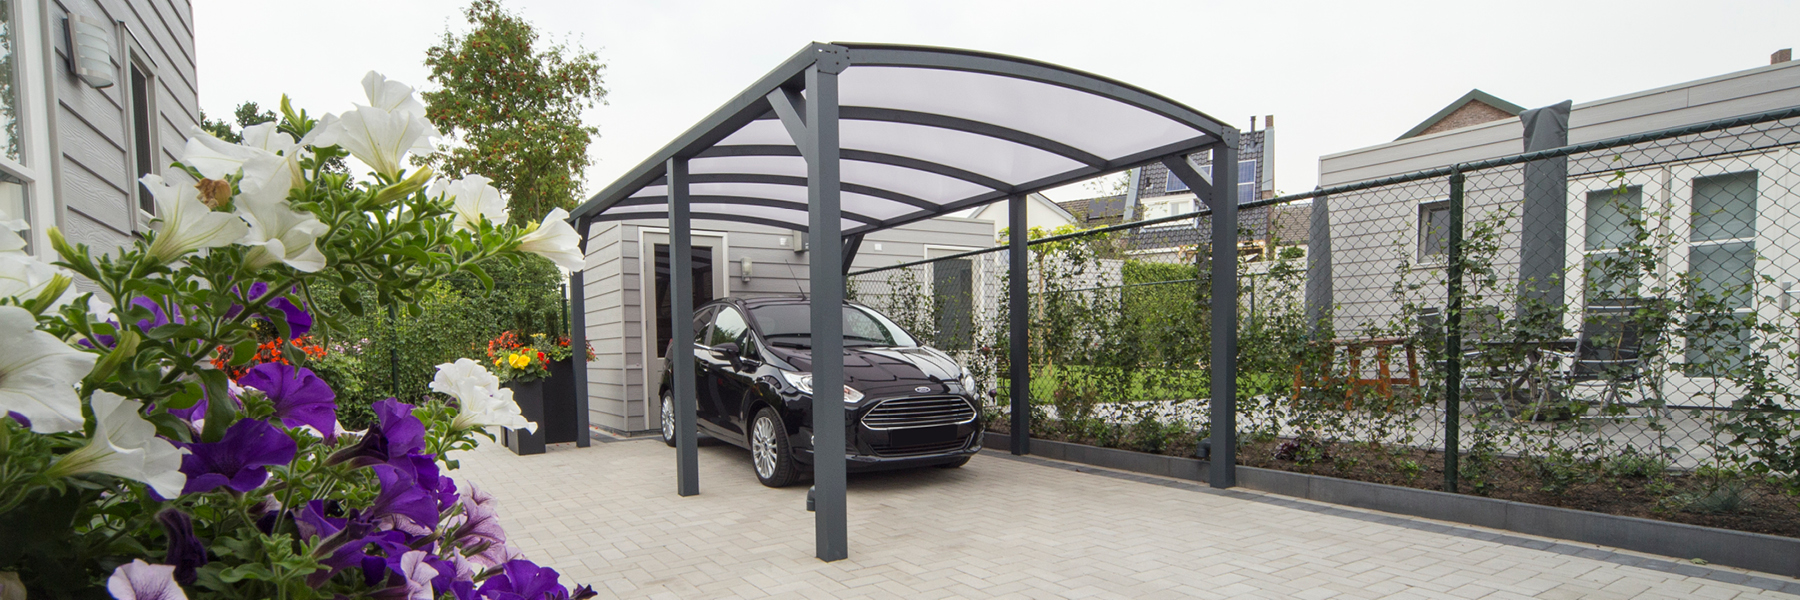 tdm-sliders-carports-gebogen